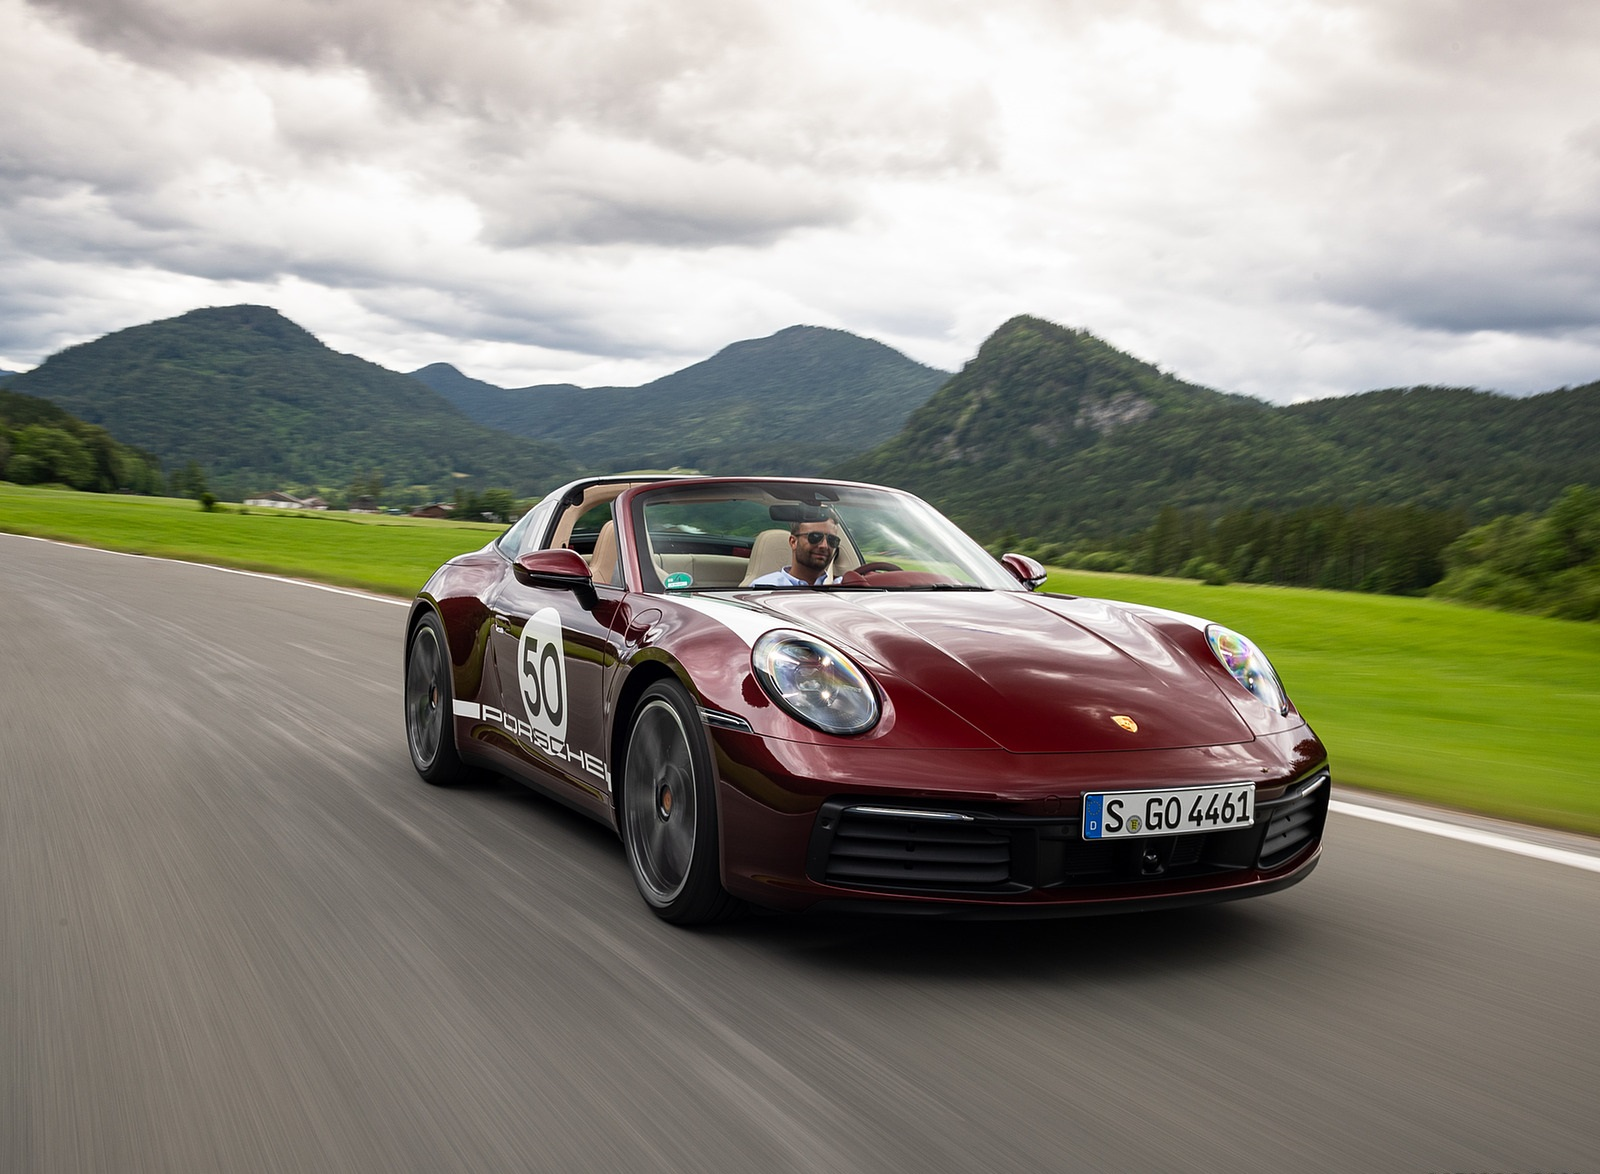 2021 Porsche 911 Targa 4S Heritage Design Edition (Color: Cherry Metallic) Front Three-Quarter Wallpapers (2)